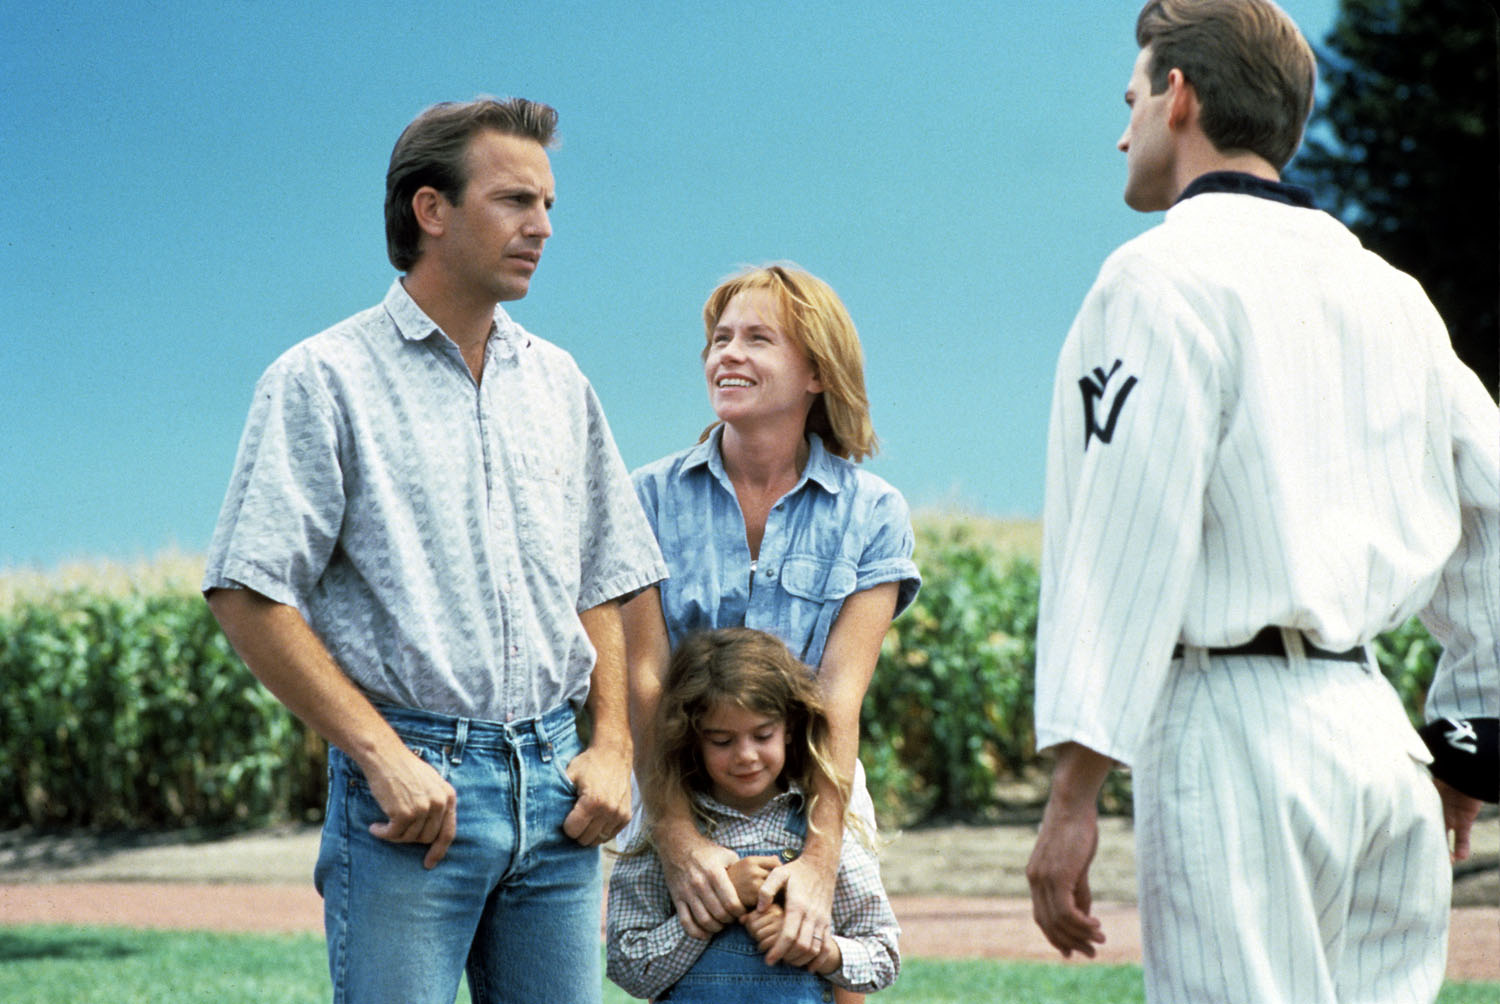 Then Field of Dreams came out.